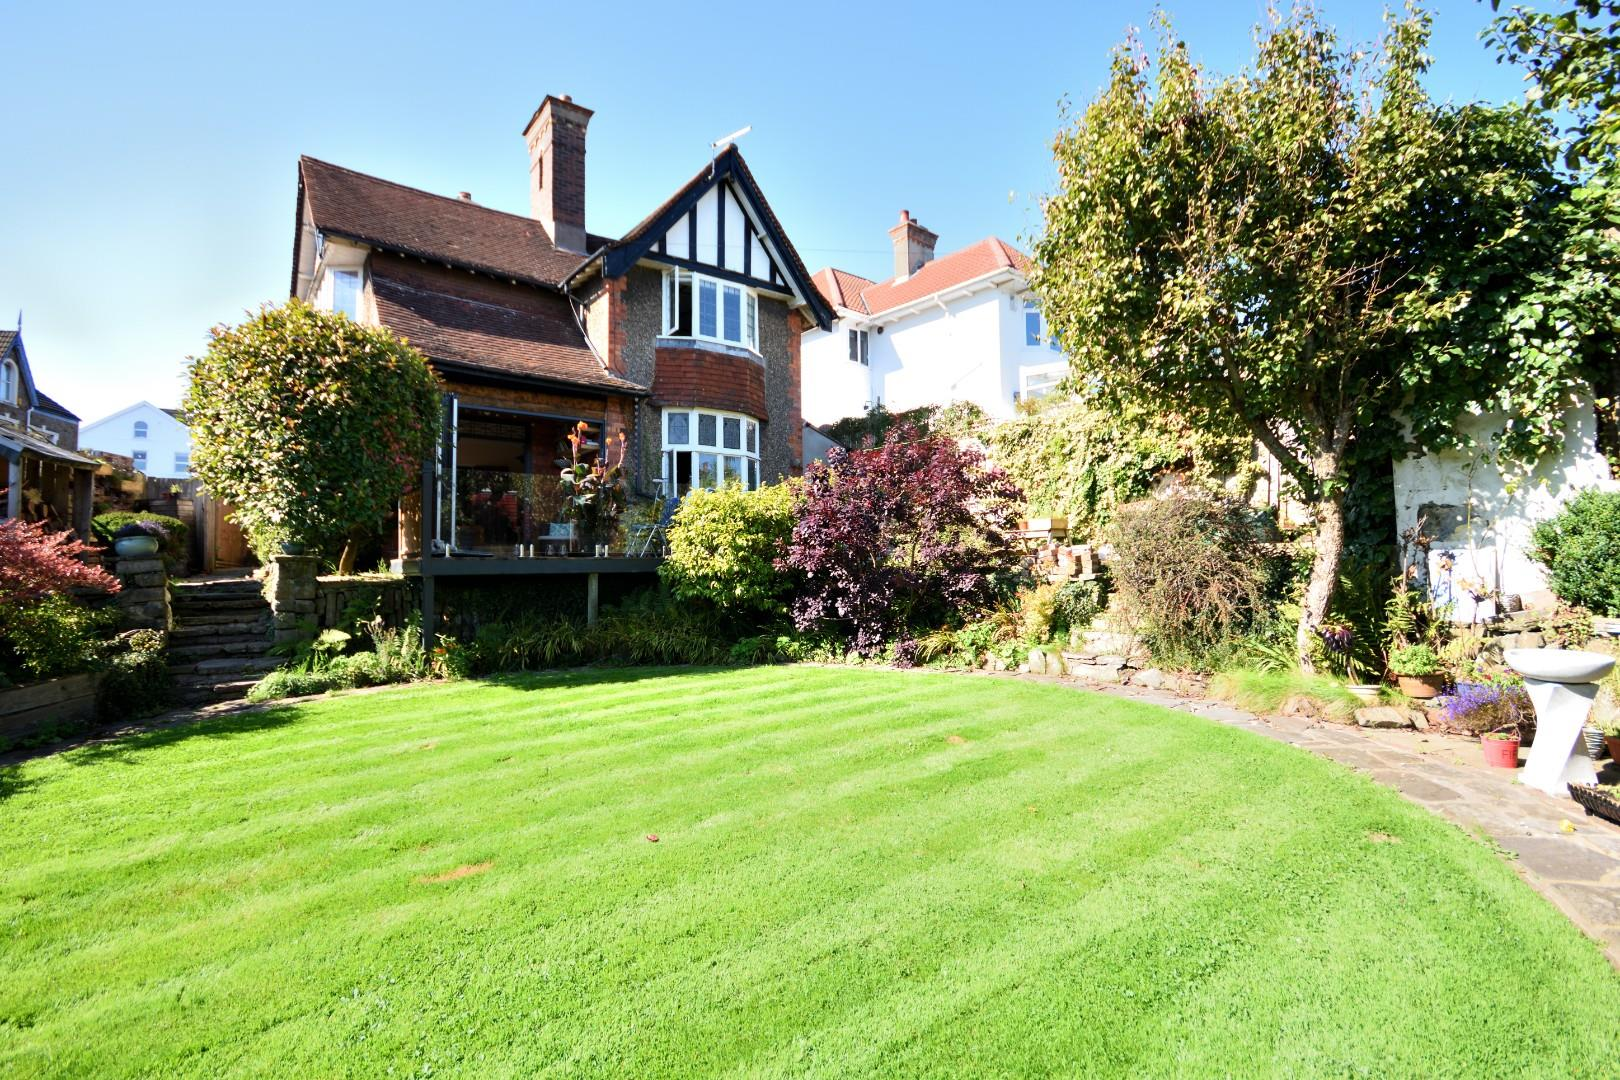 4 bed detached house for sale in Eden Avenue, Swansea, SA2